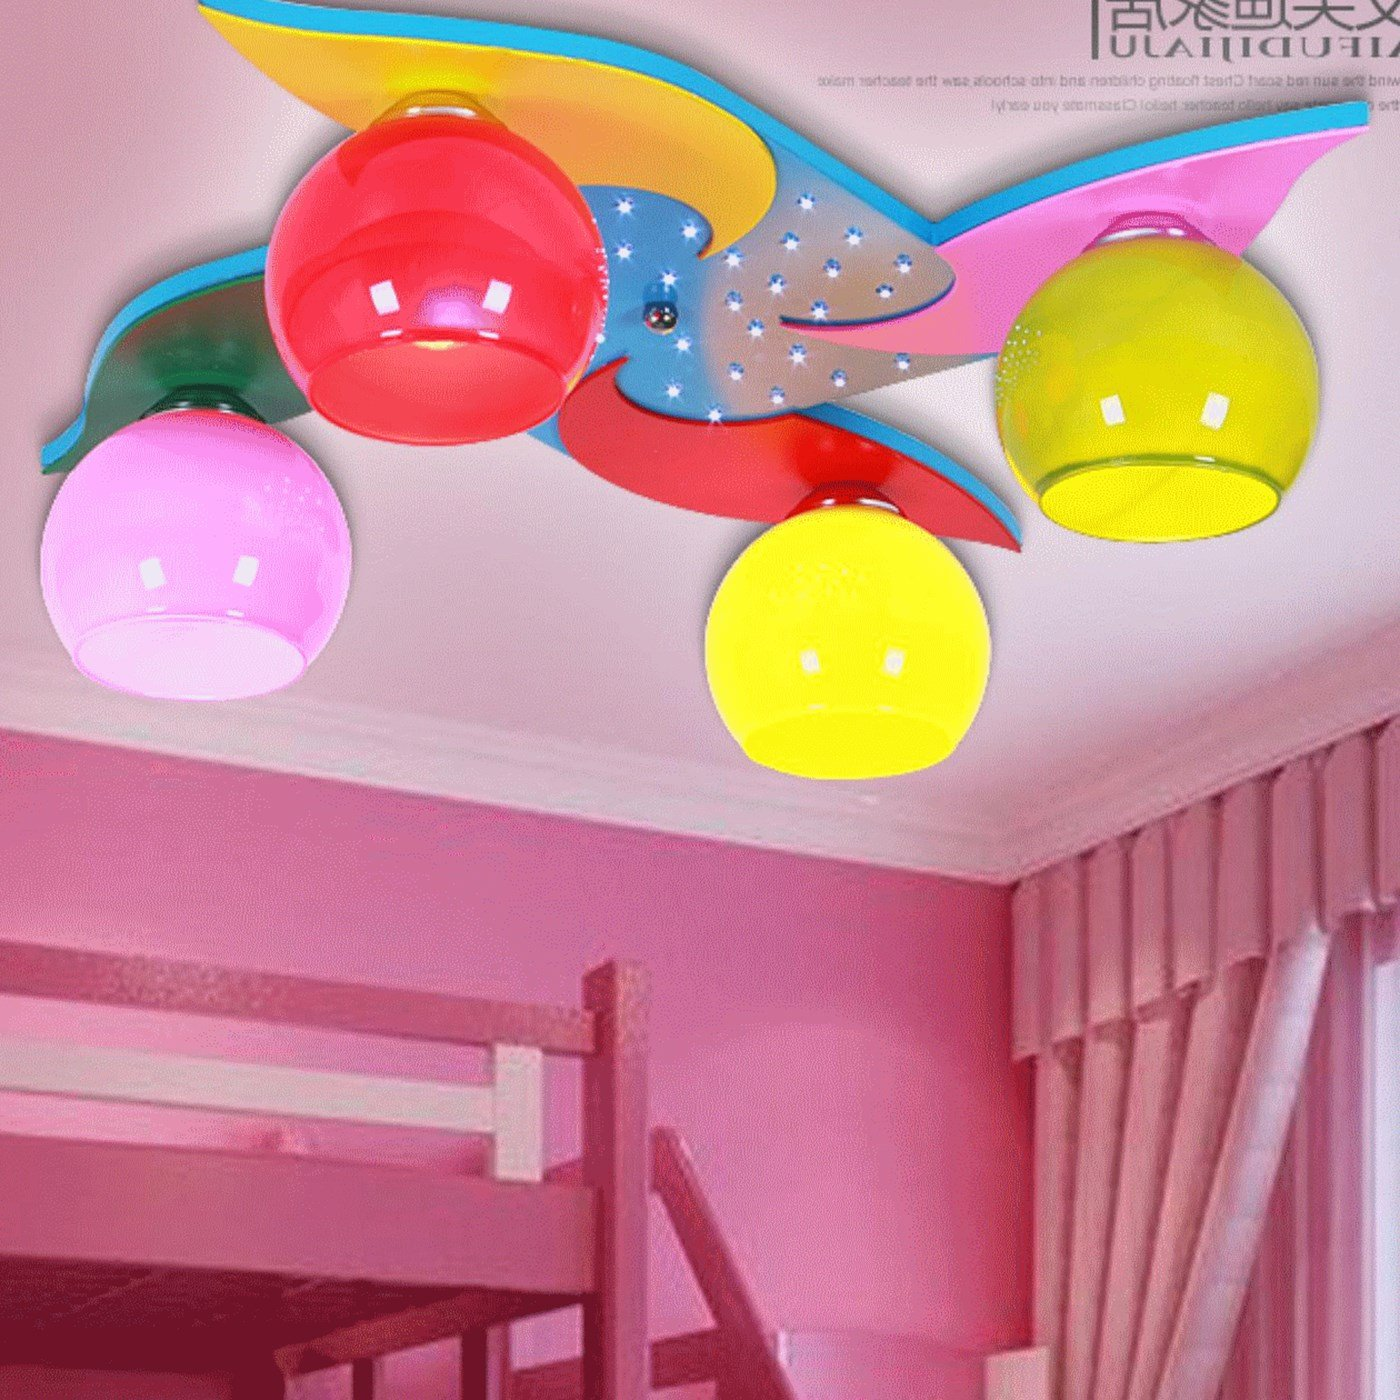 BGmdjcf Kindergarten children LED decoration light ceiling light 4 windmill cartoon lamps men and women baby bedroom lighting , plus remote control